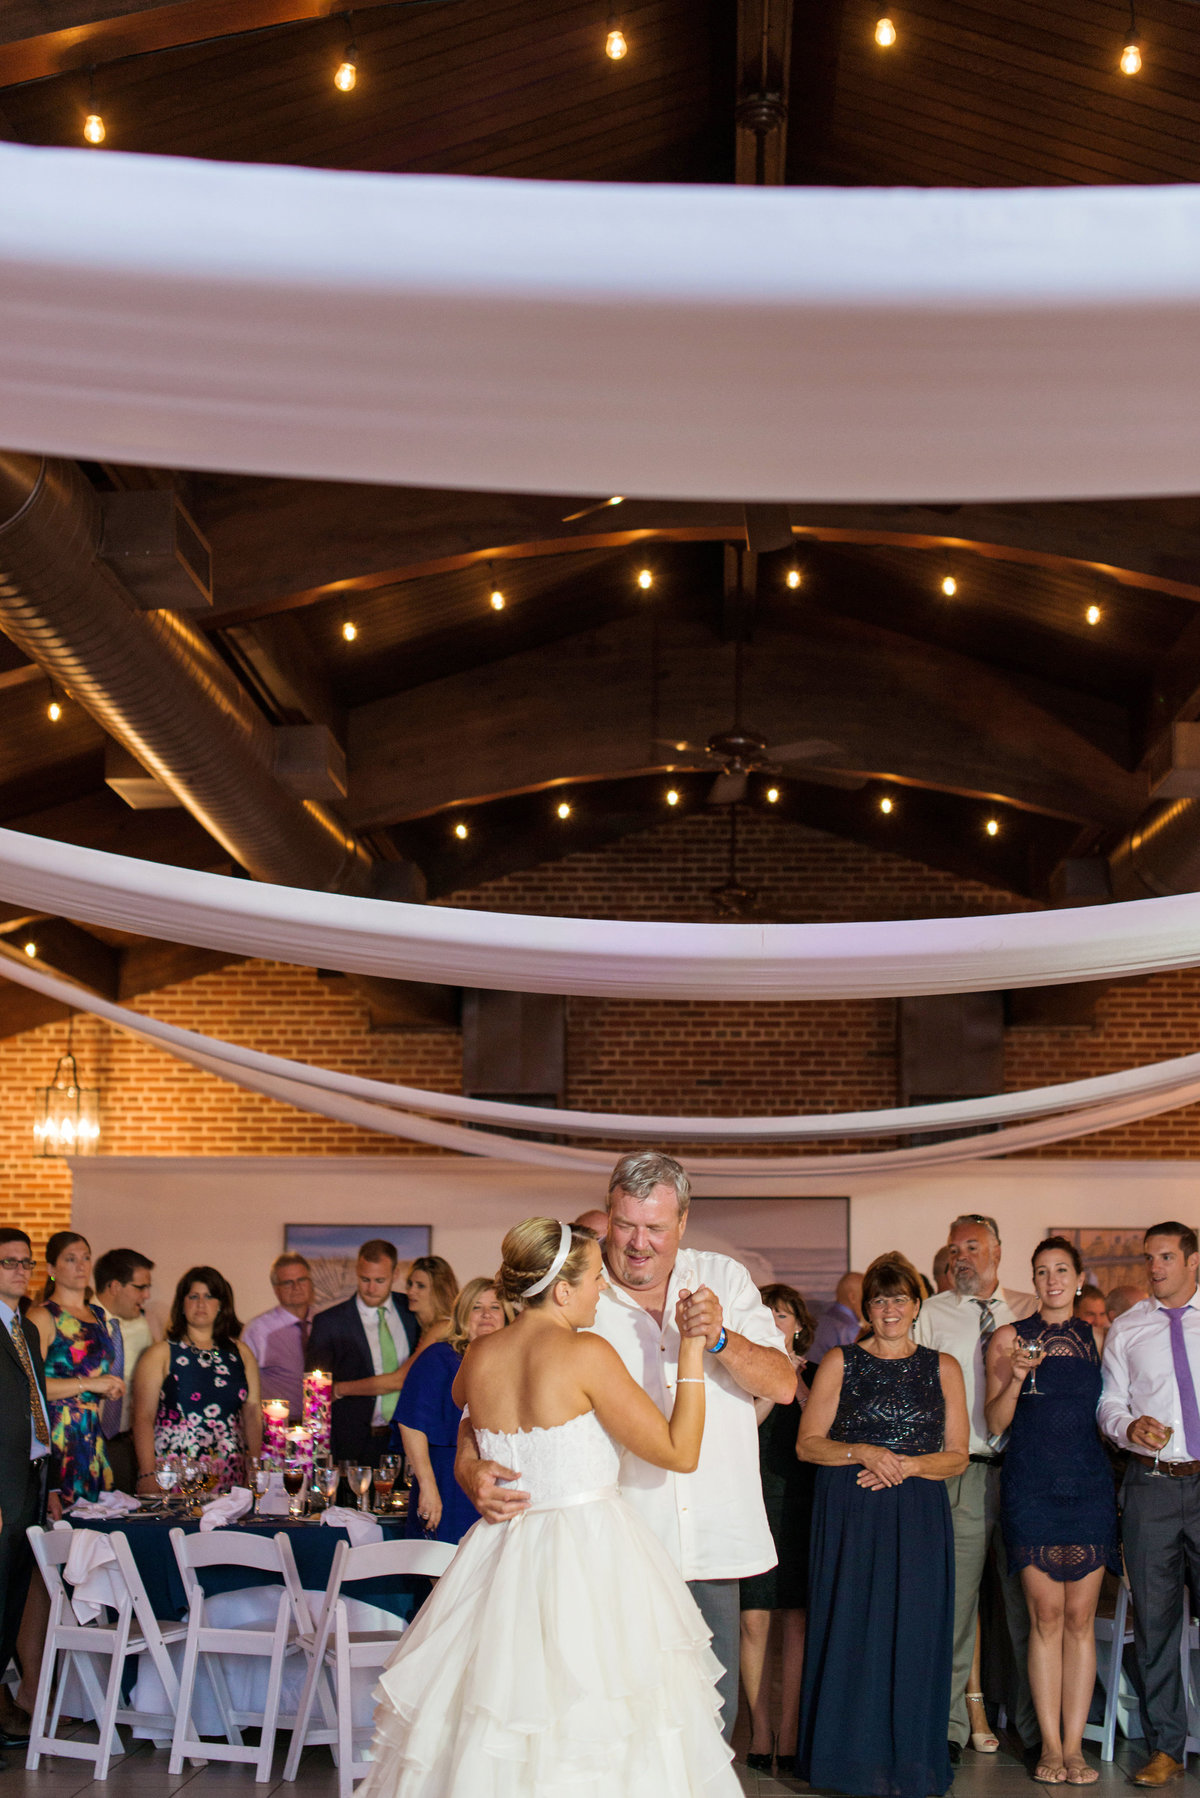 photo of bride dancing with dad during wedding reception at Pavilion at Sunken Meadow